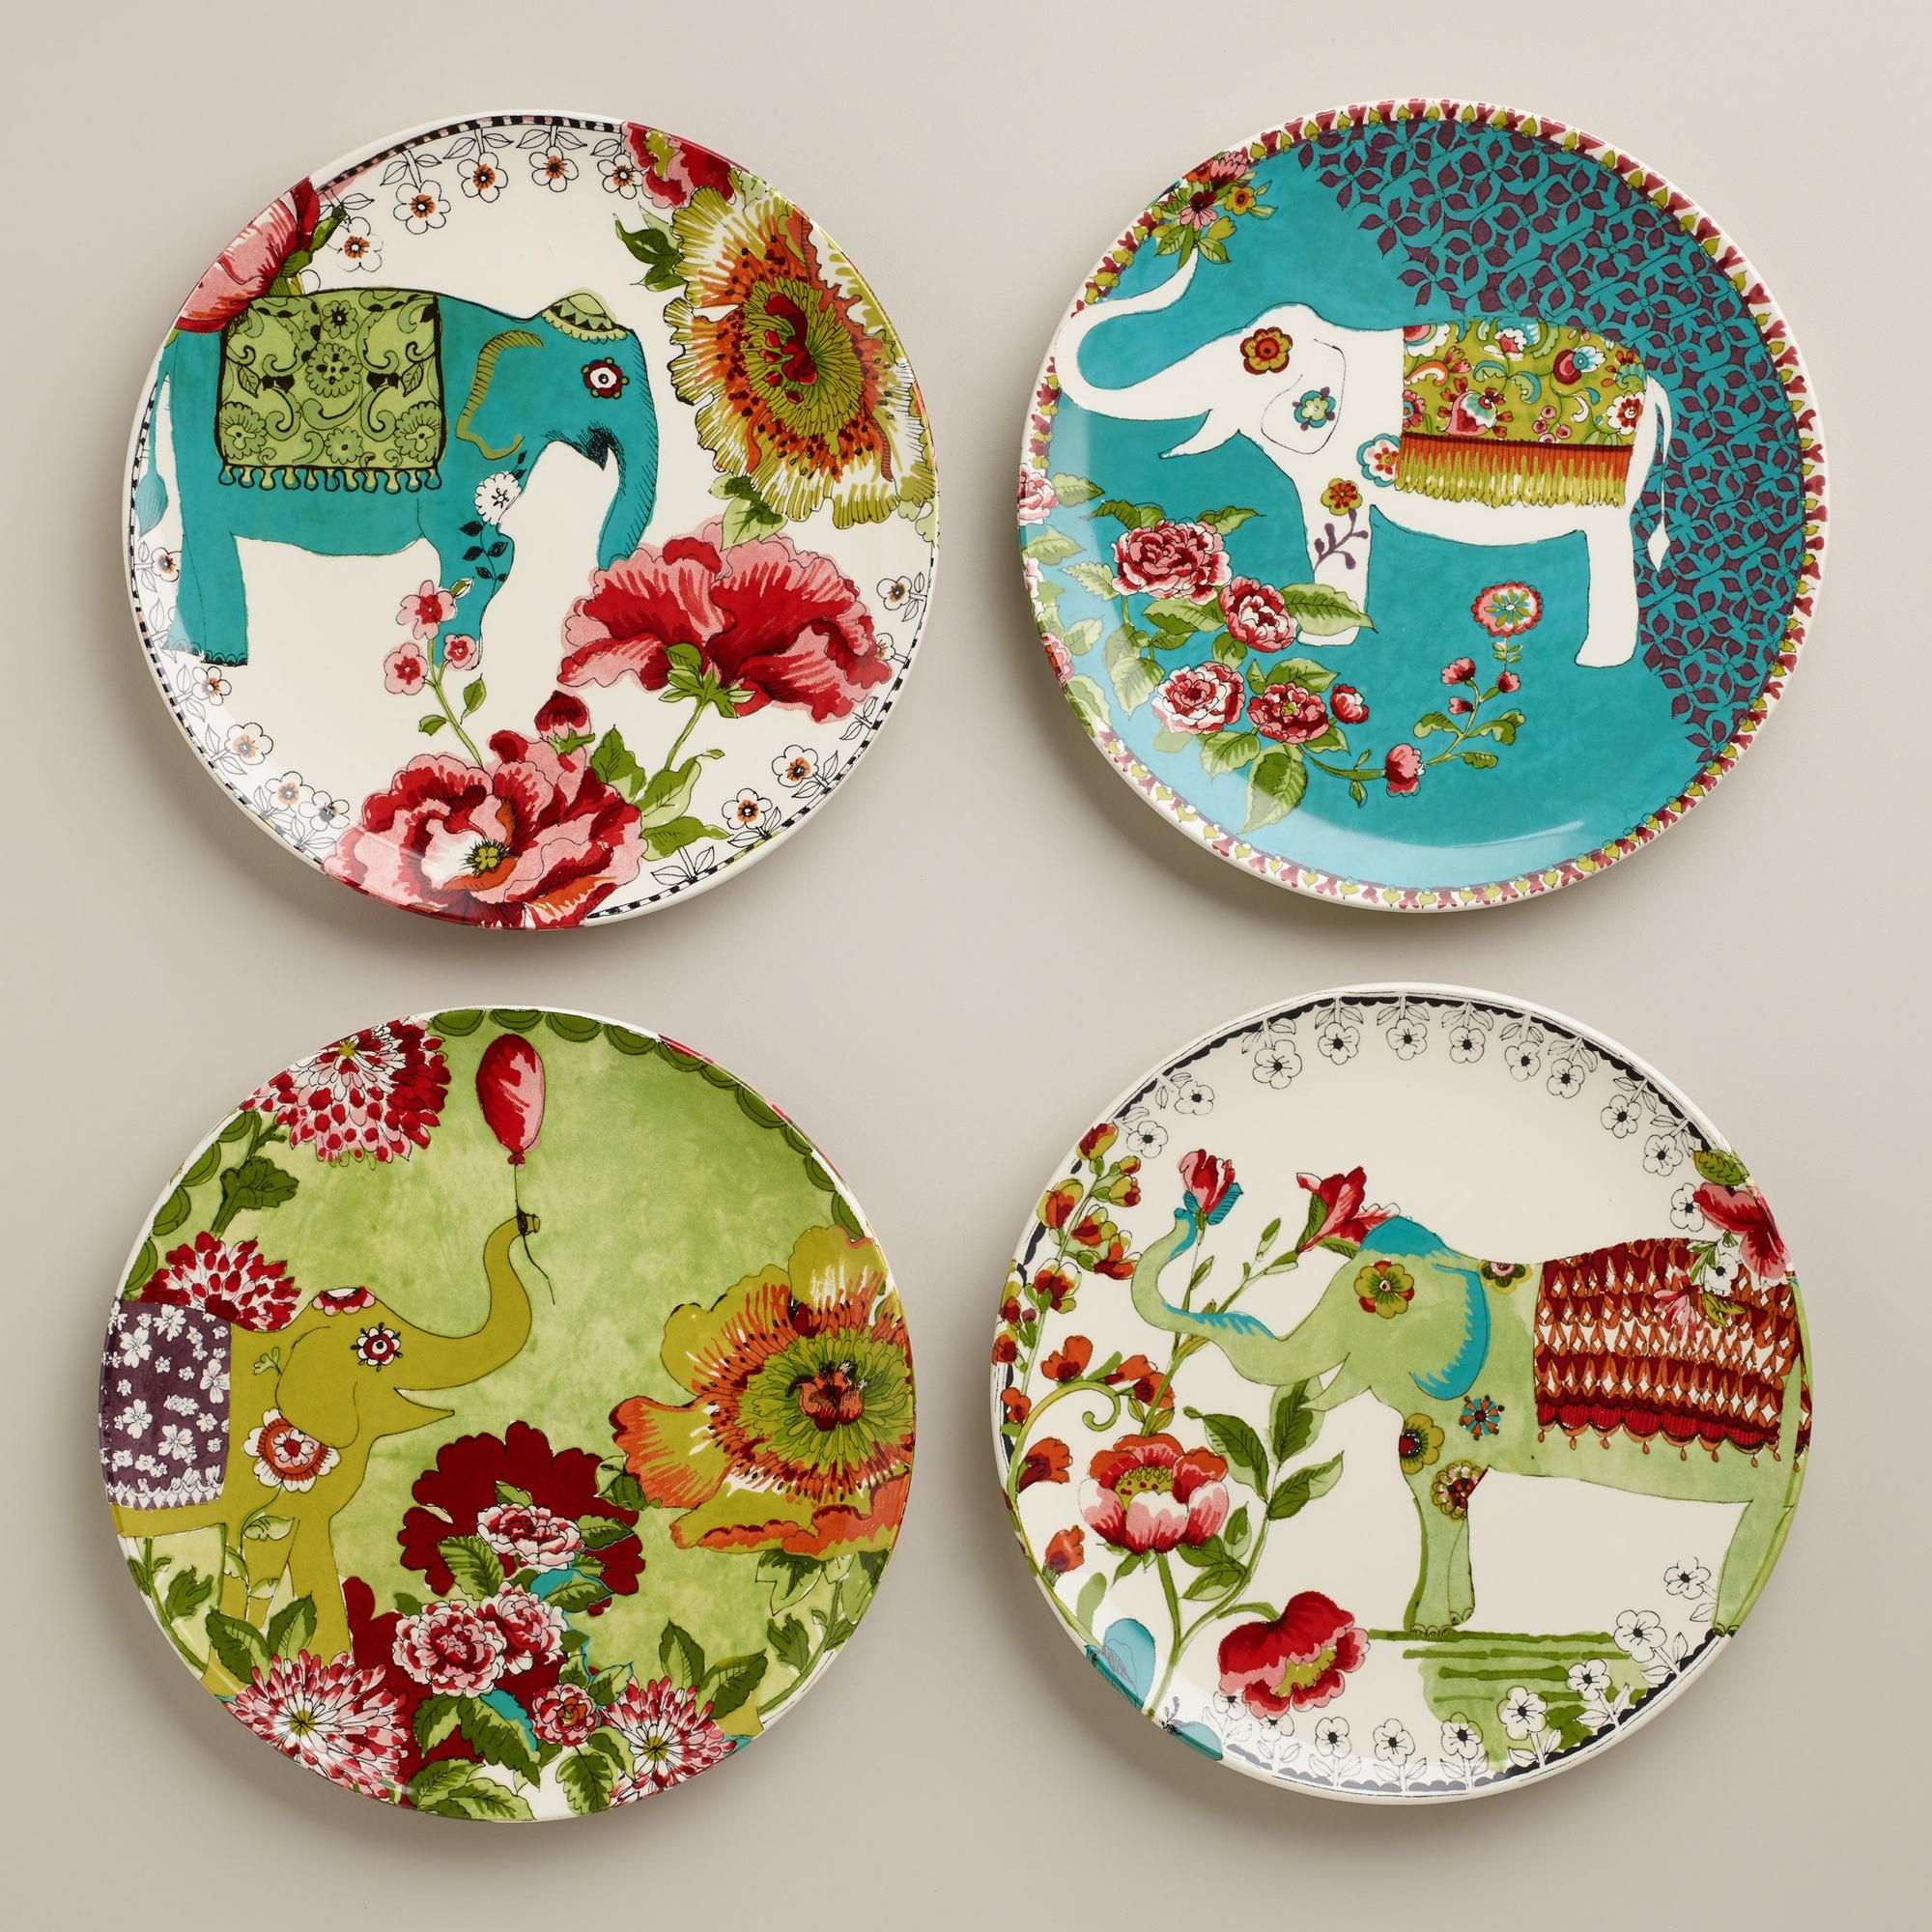 Set of 4 decorative plates 1 & Set Of 4 Decorative Plates - Foter